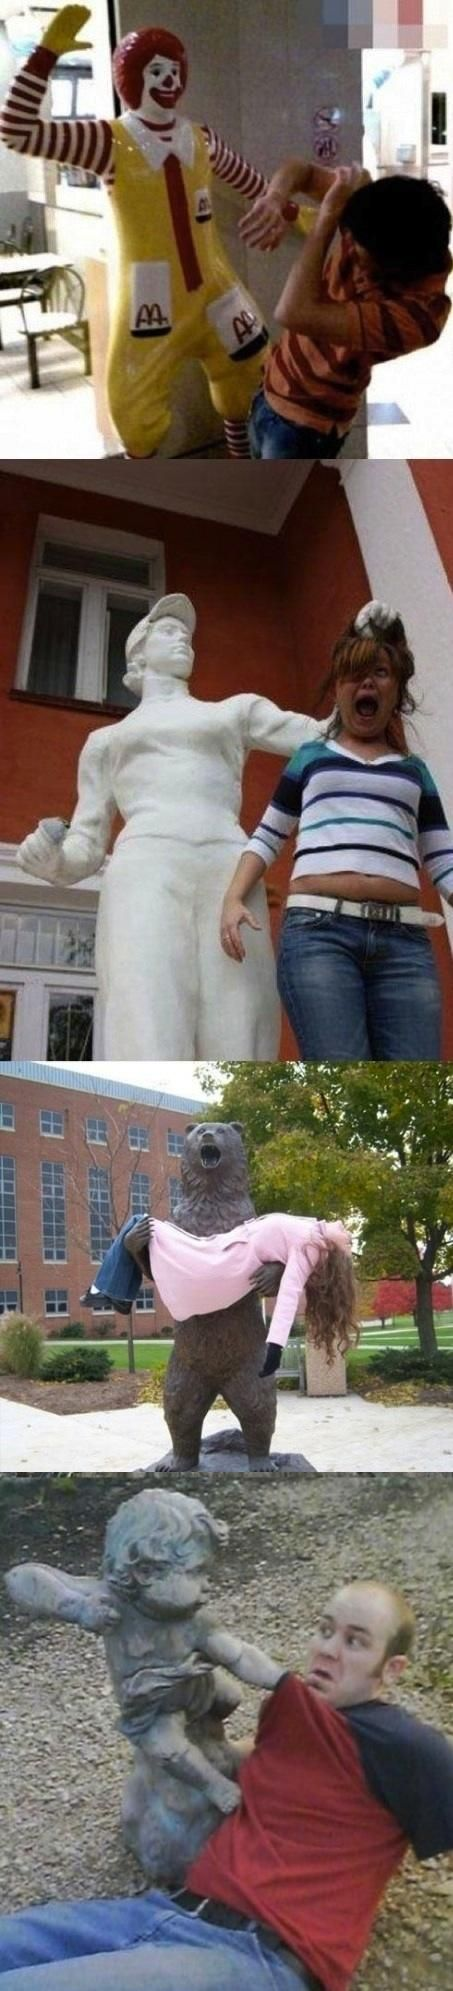 Weeping angels are real. Lol! The Bear is where I go to school, I won't be able to look at it the same when I pass it on the way to class